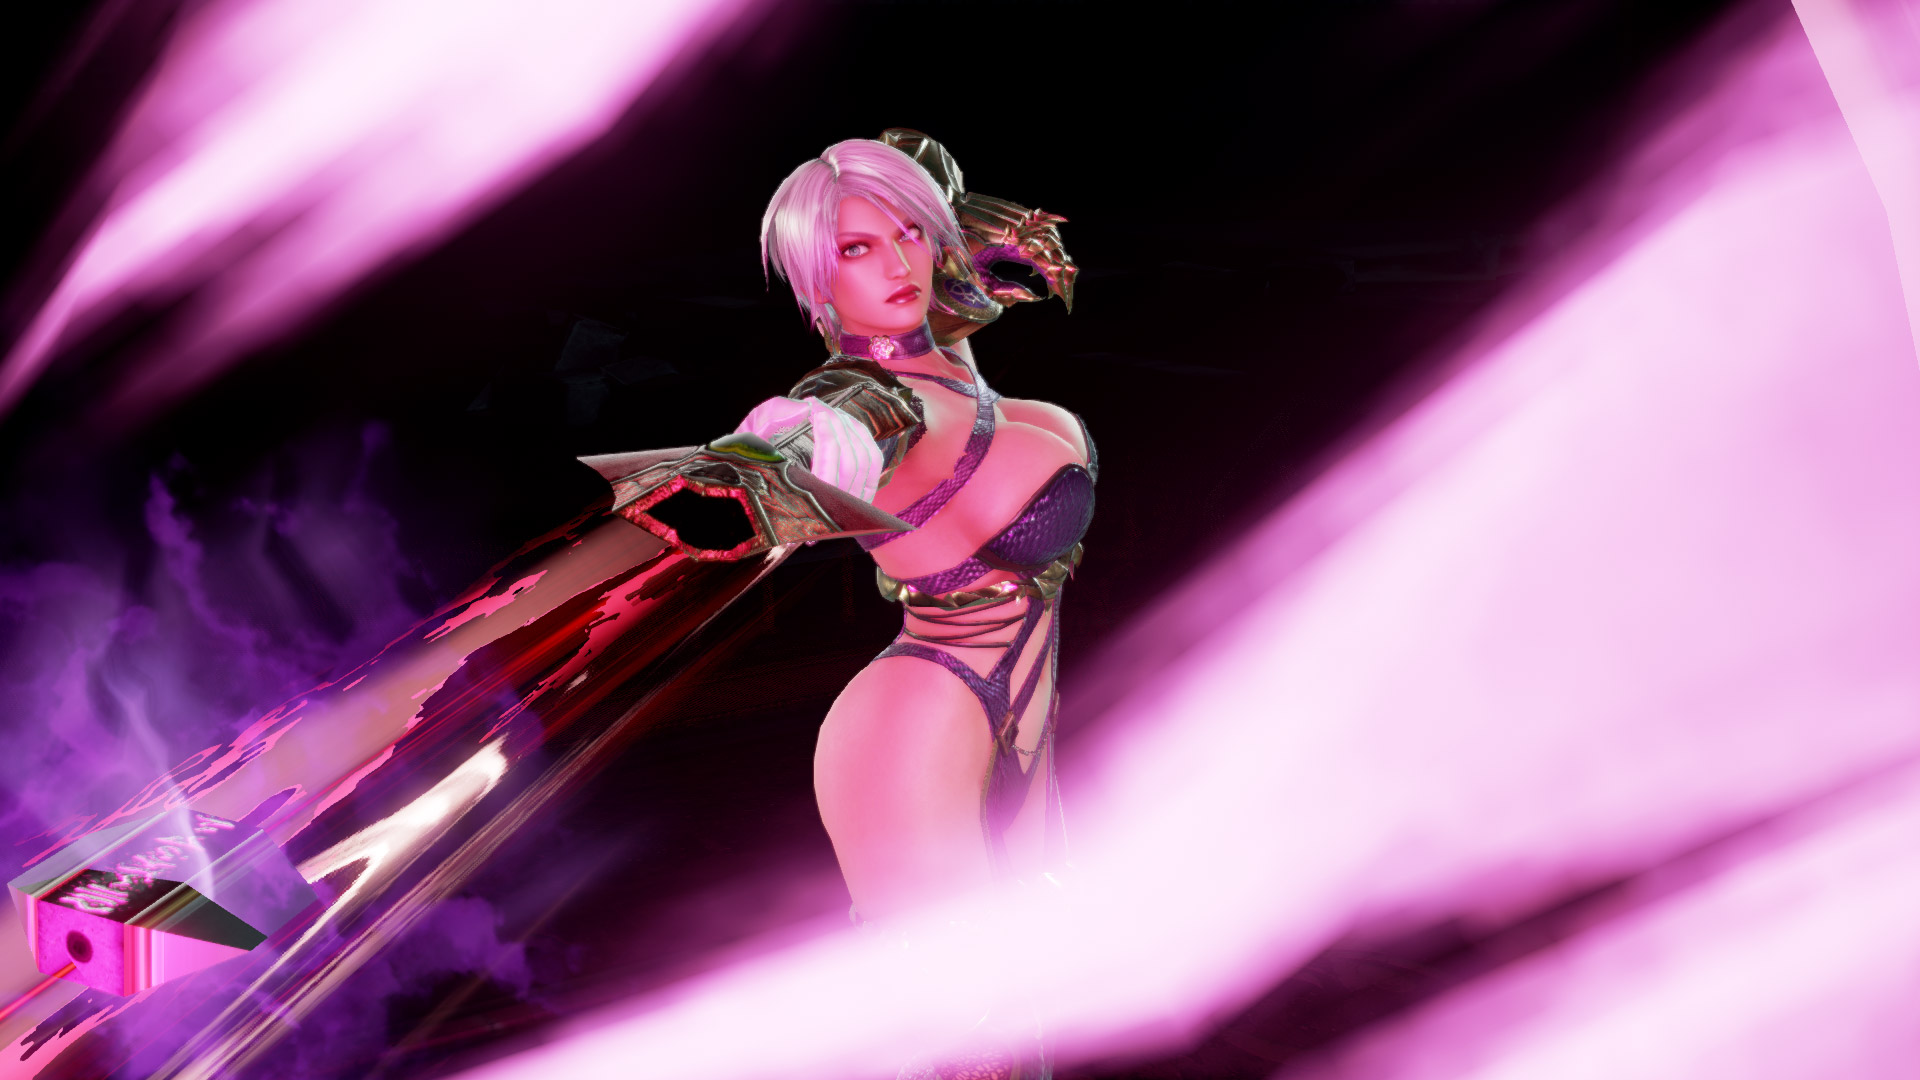 Soul Calibur VI roster gains Ivy and Zasalamel